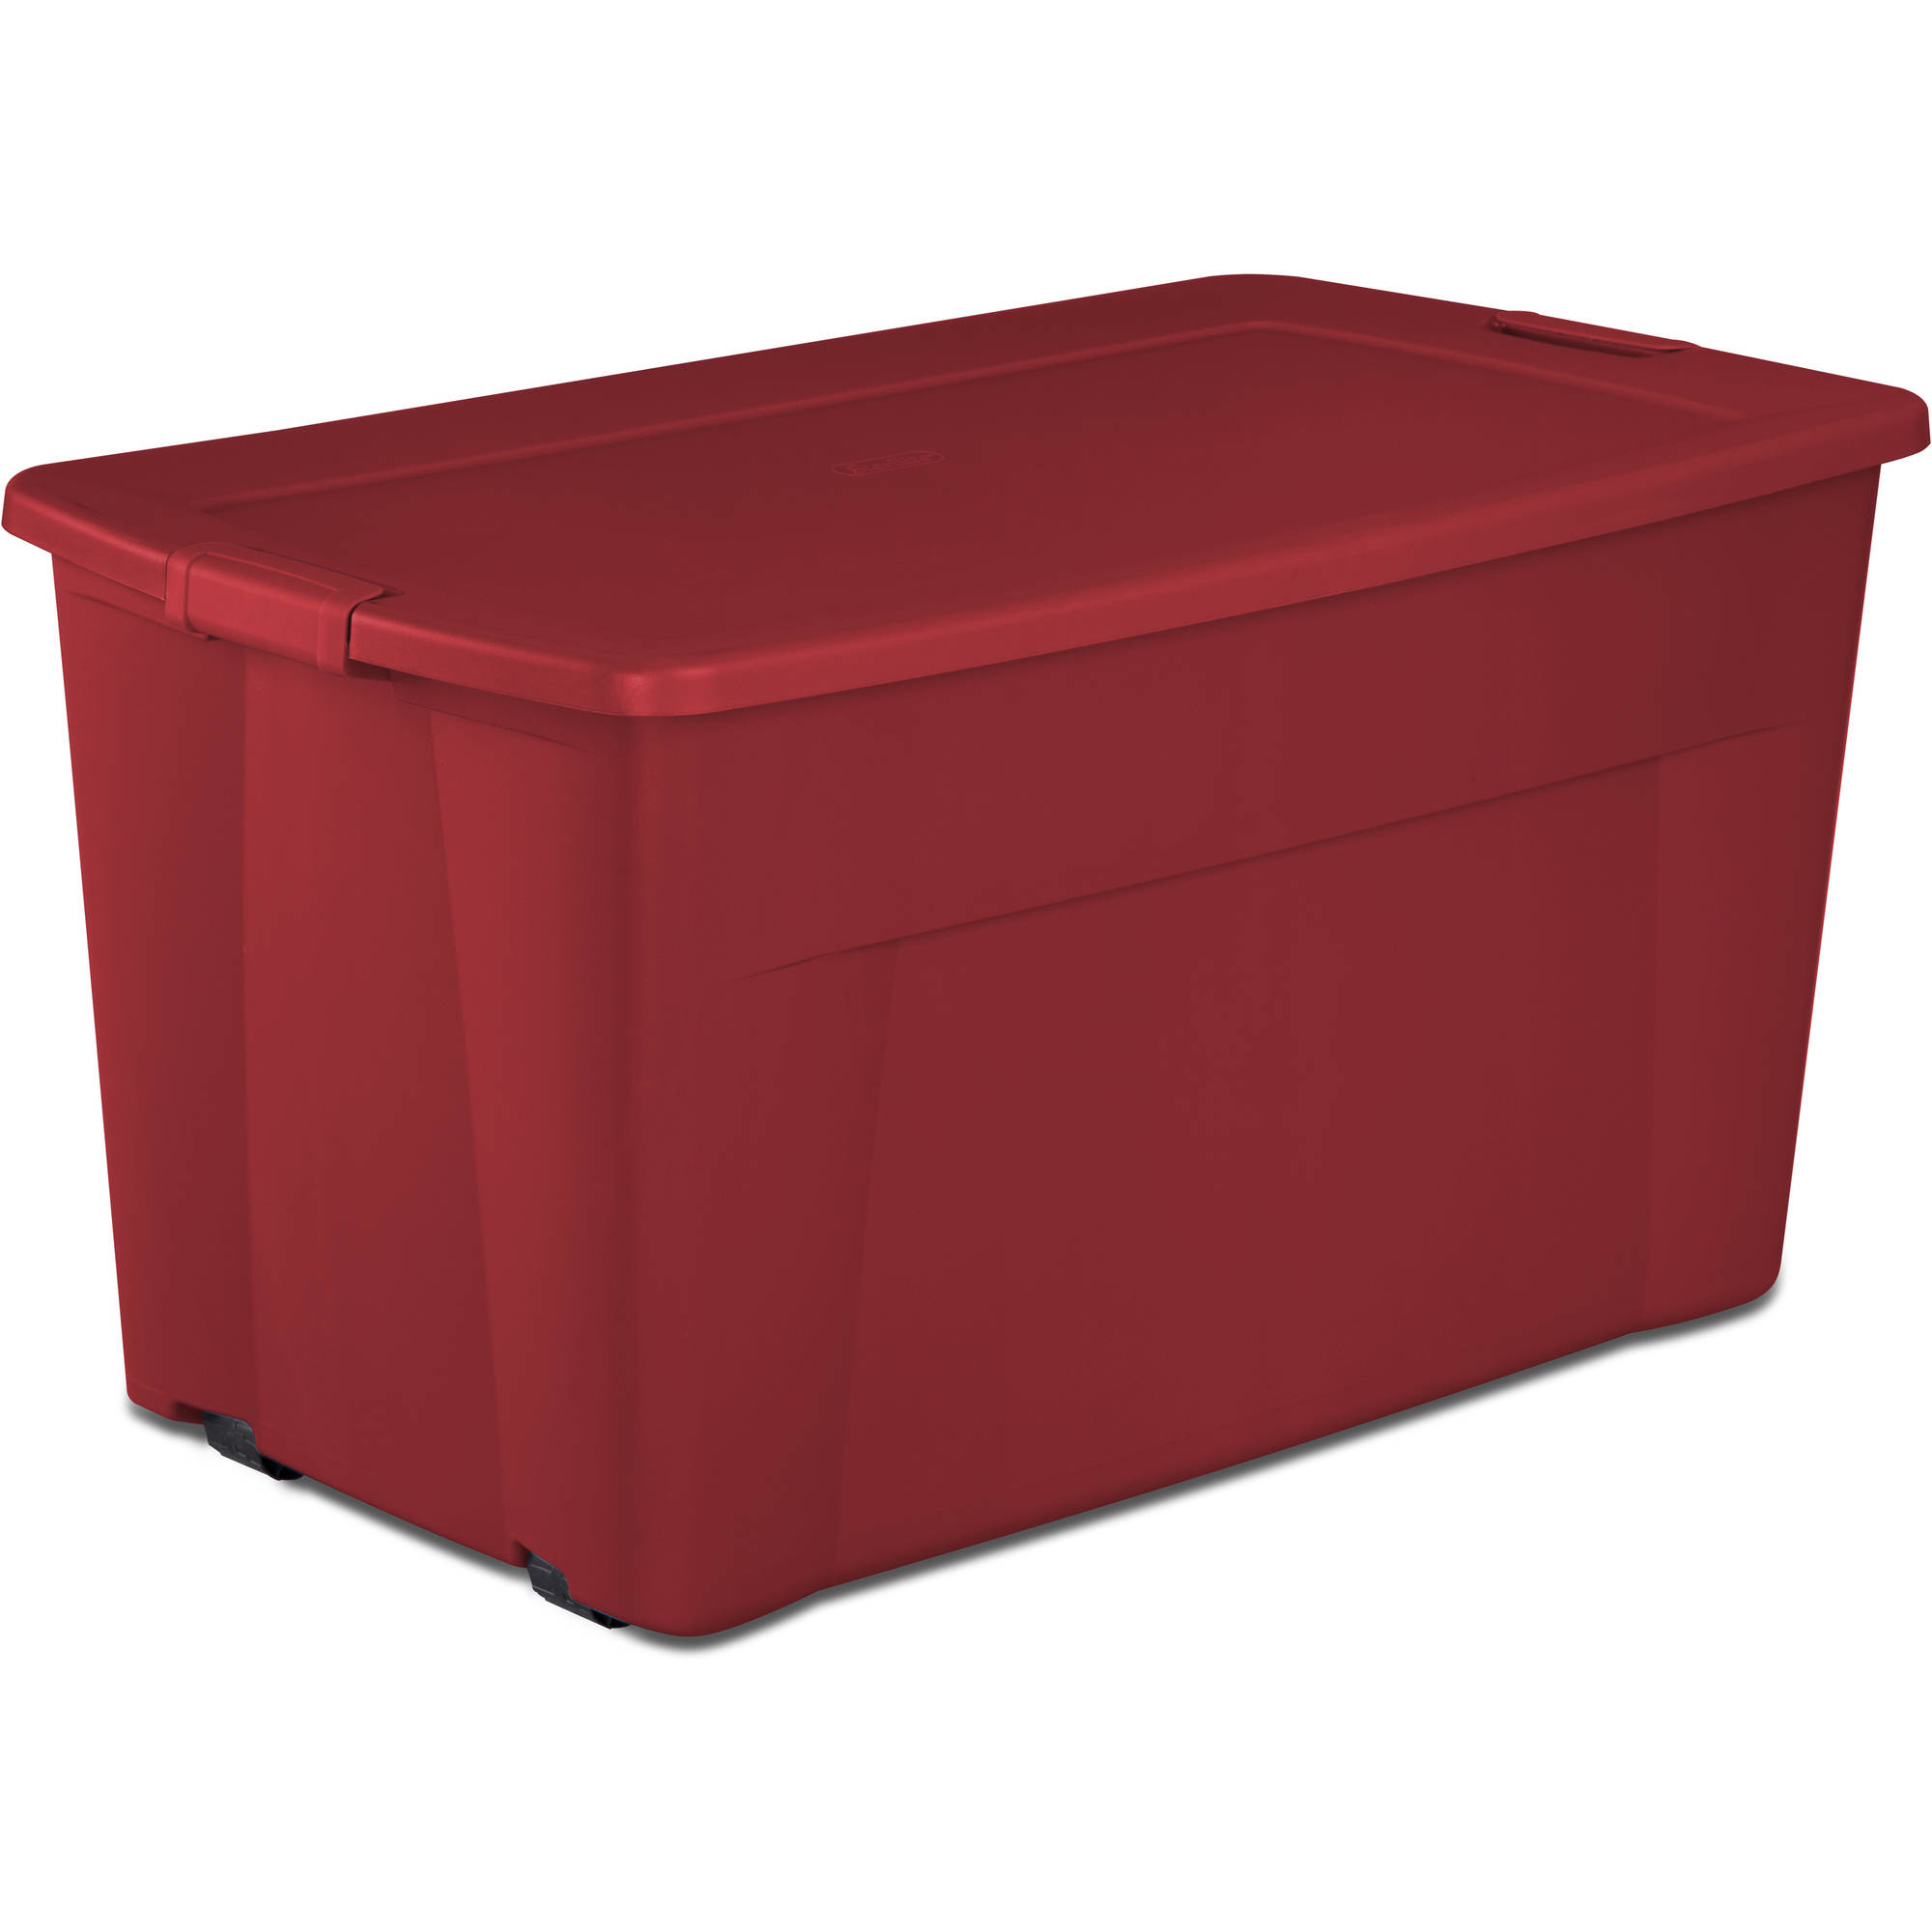 Sterilite 45 Gallon Wheeled Tote Box Red Available In Case Of 4 Or Single Unit